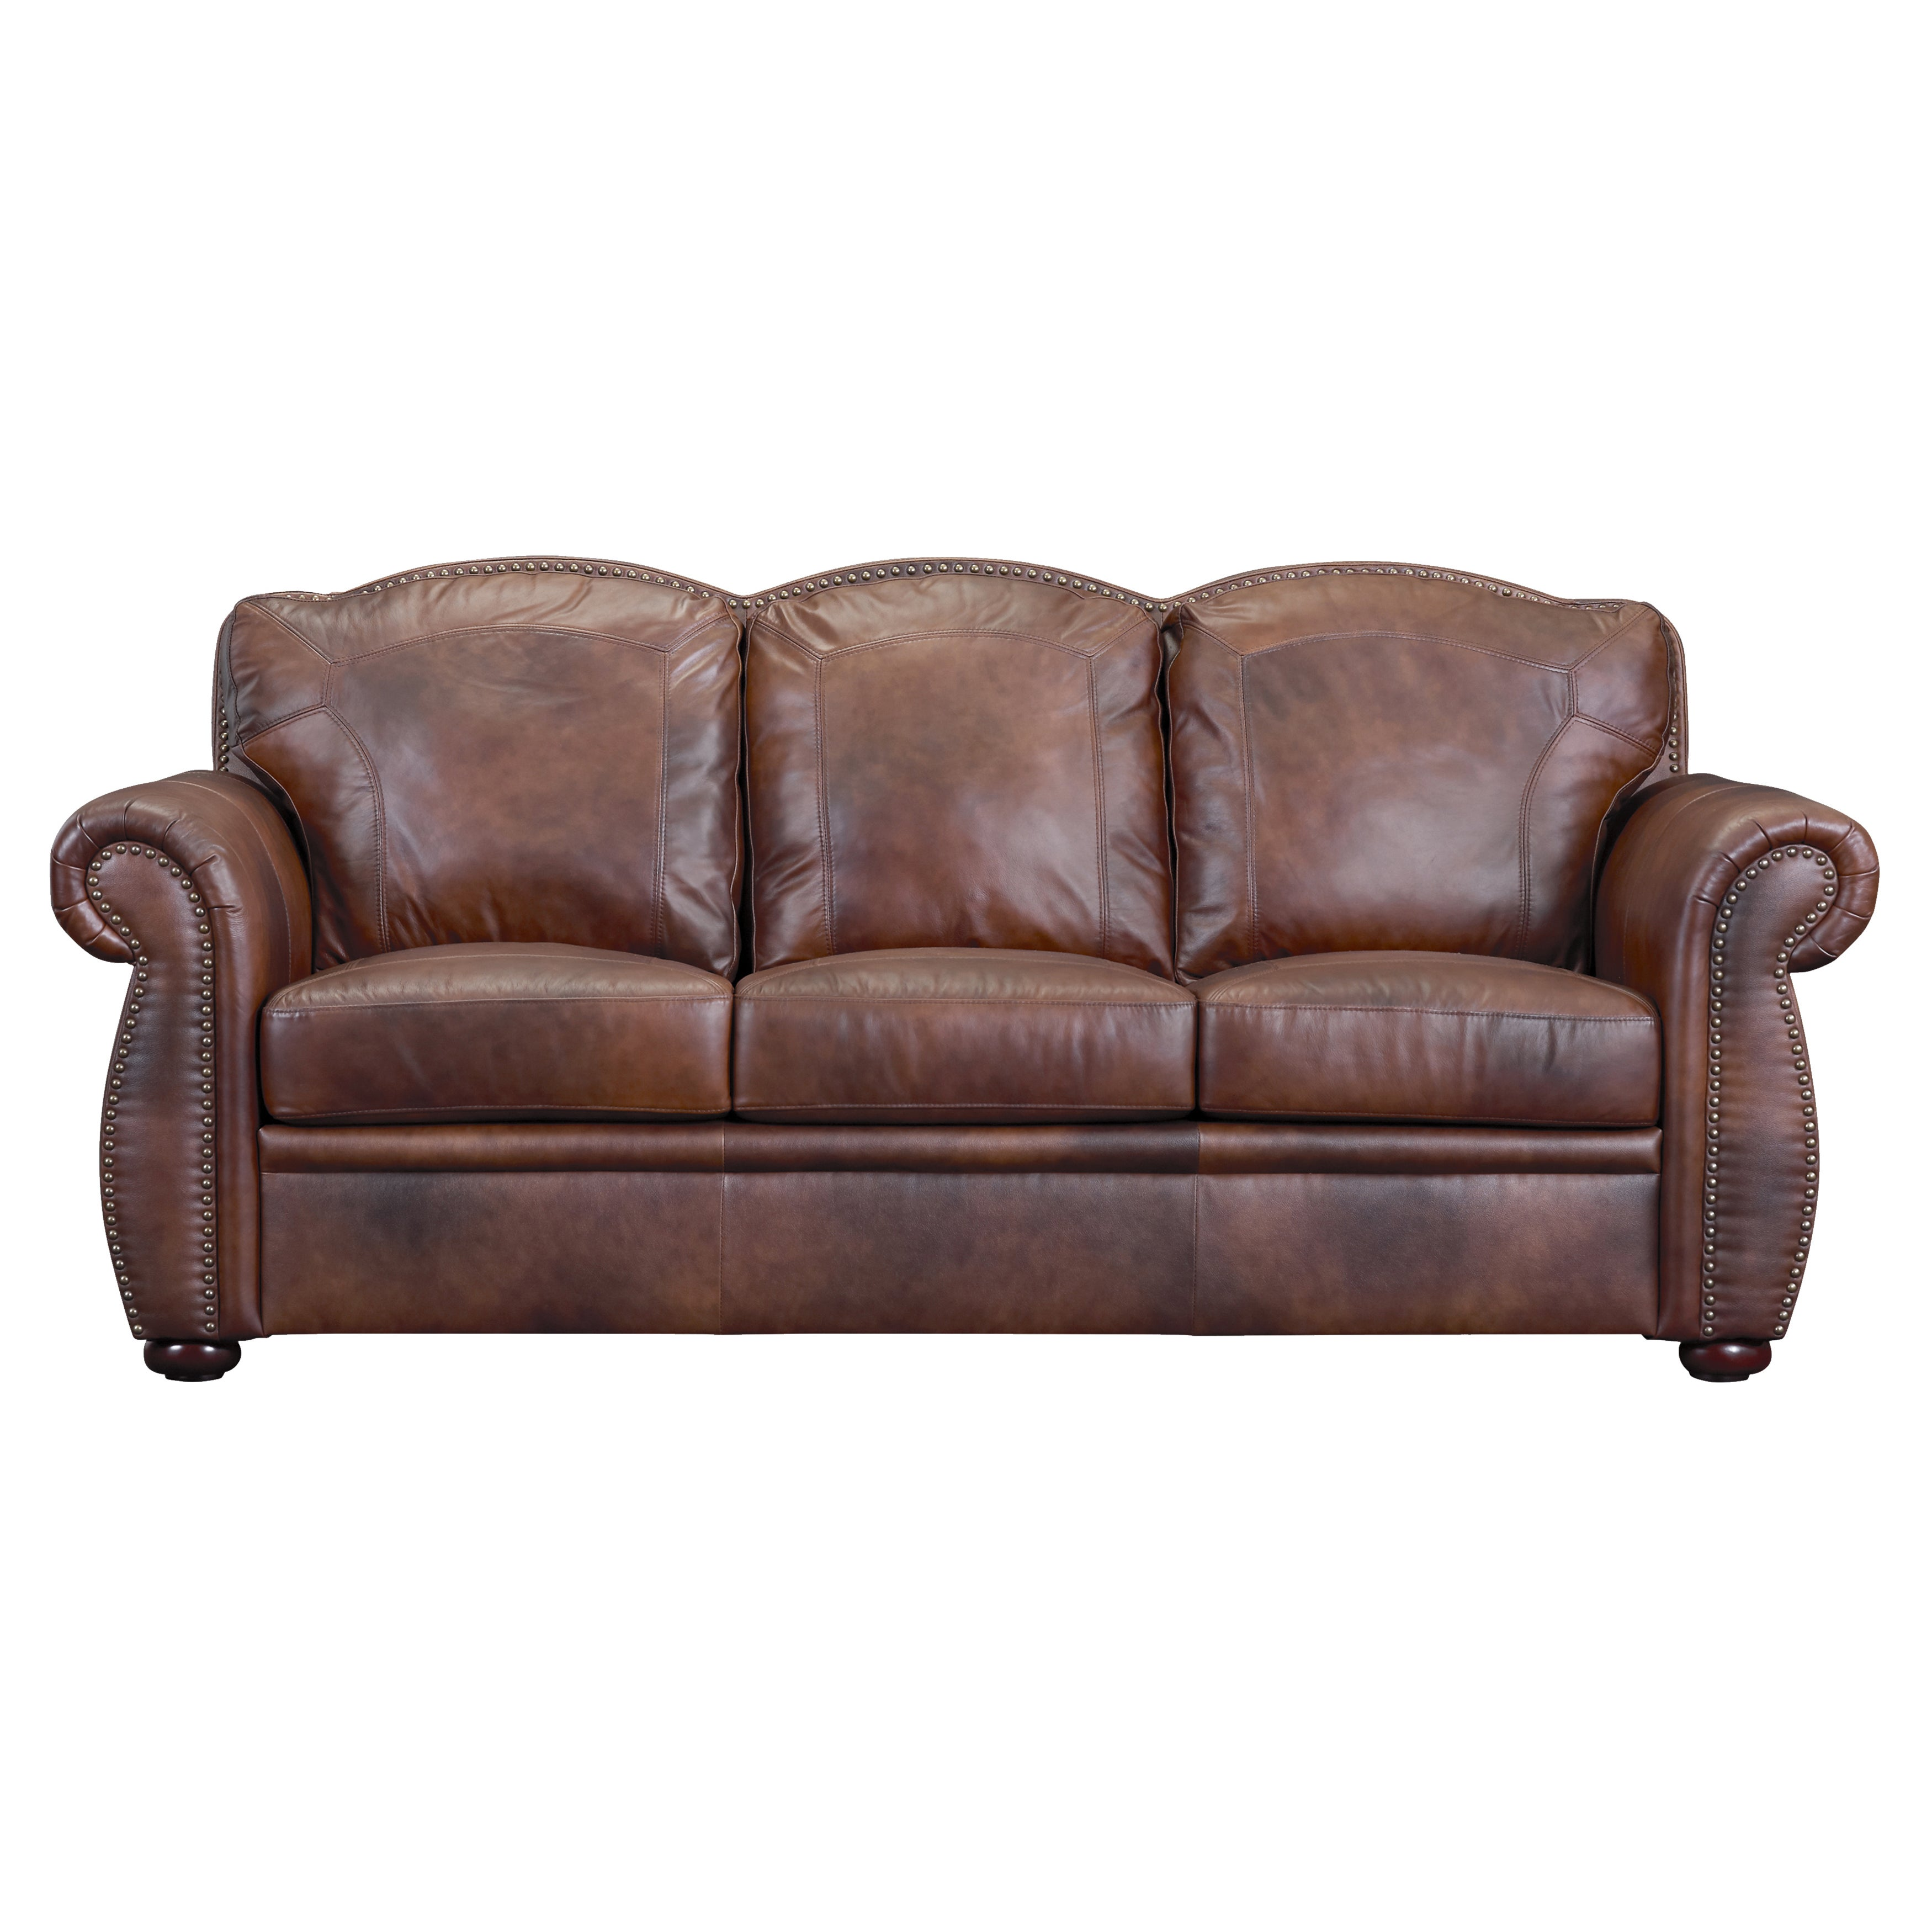 Phoenix Marco Brown Leather Sofa